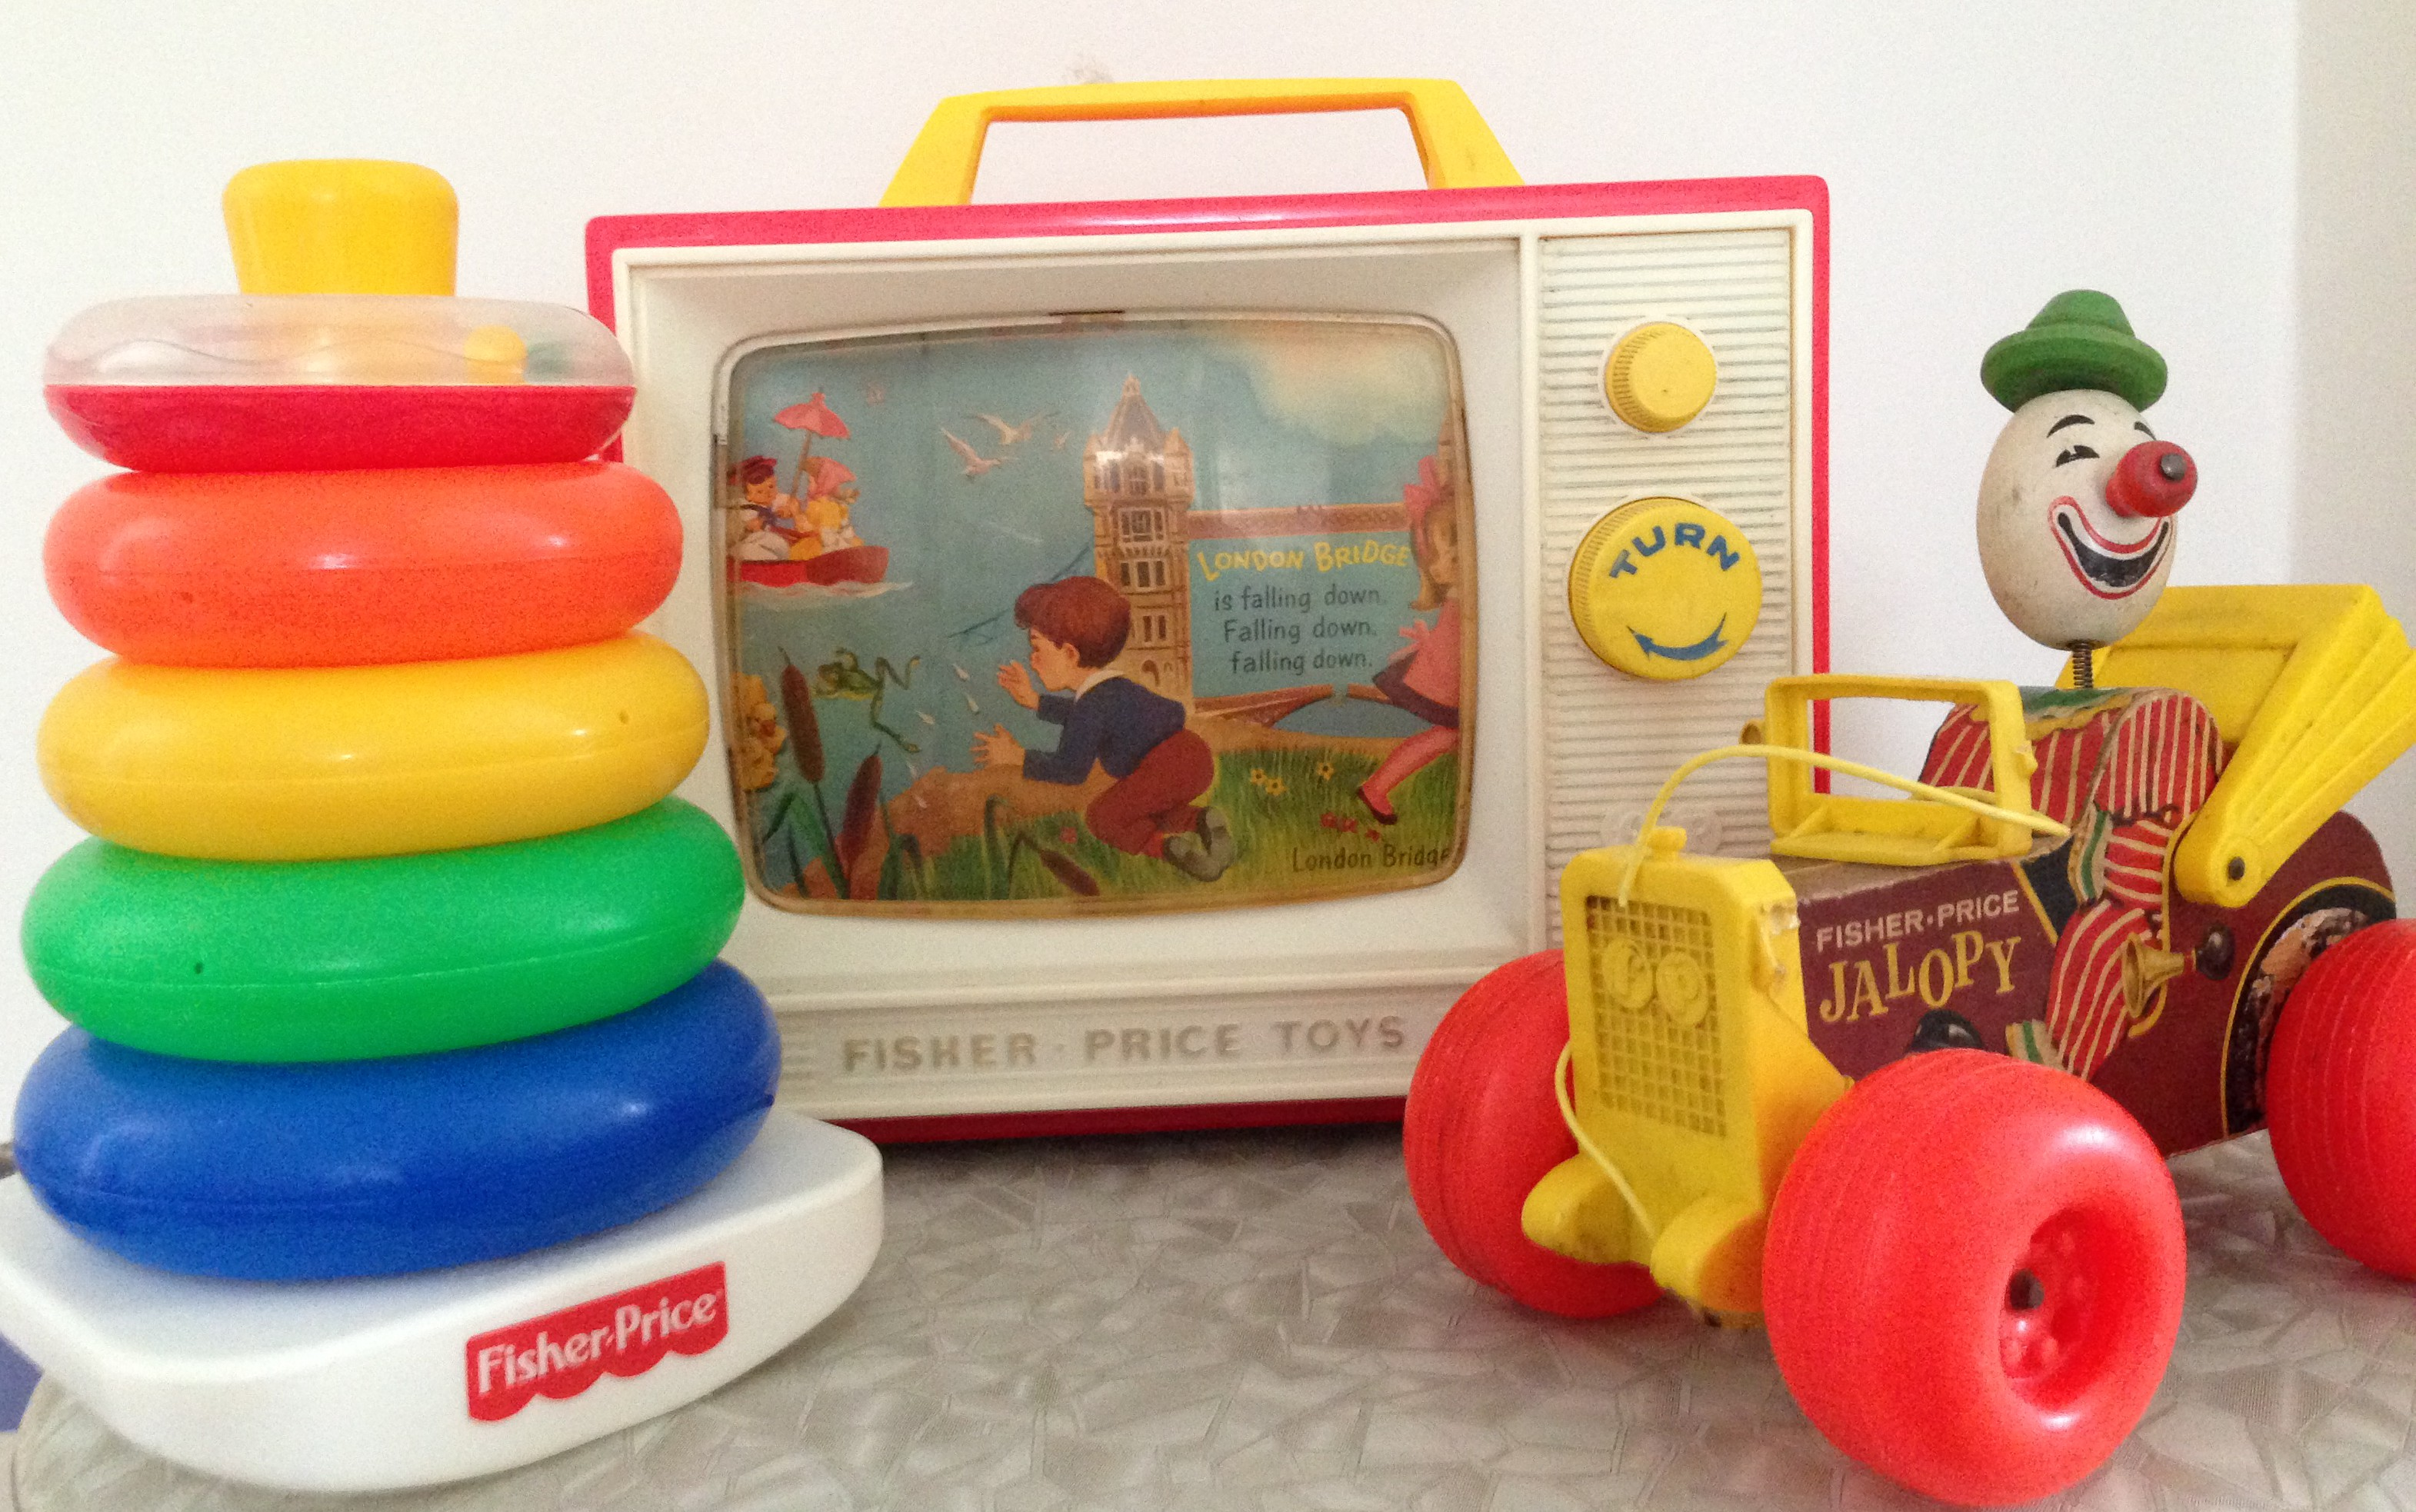 Classic Fisher Price Toys : A vintage ticket to fly and dream the fisher price